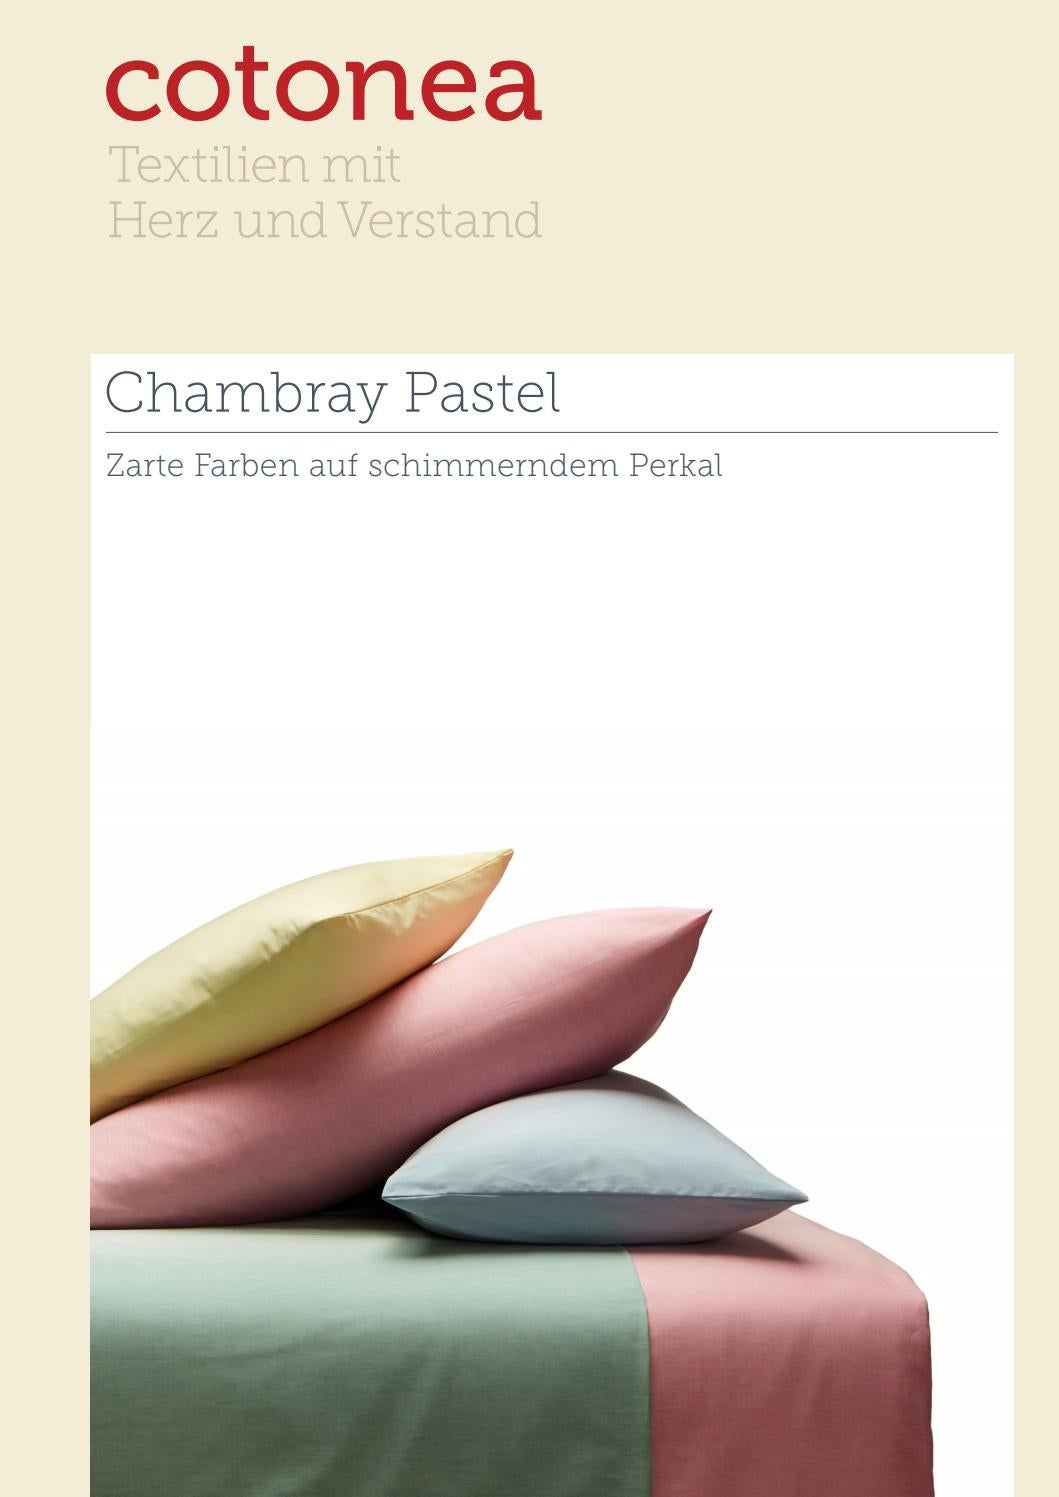 Chambray Bettwäsche Produktblatt Bettwaesche Chambray Pastel By Cotonea Issuu